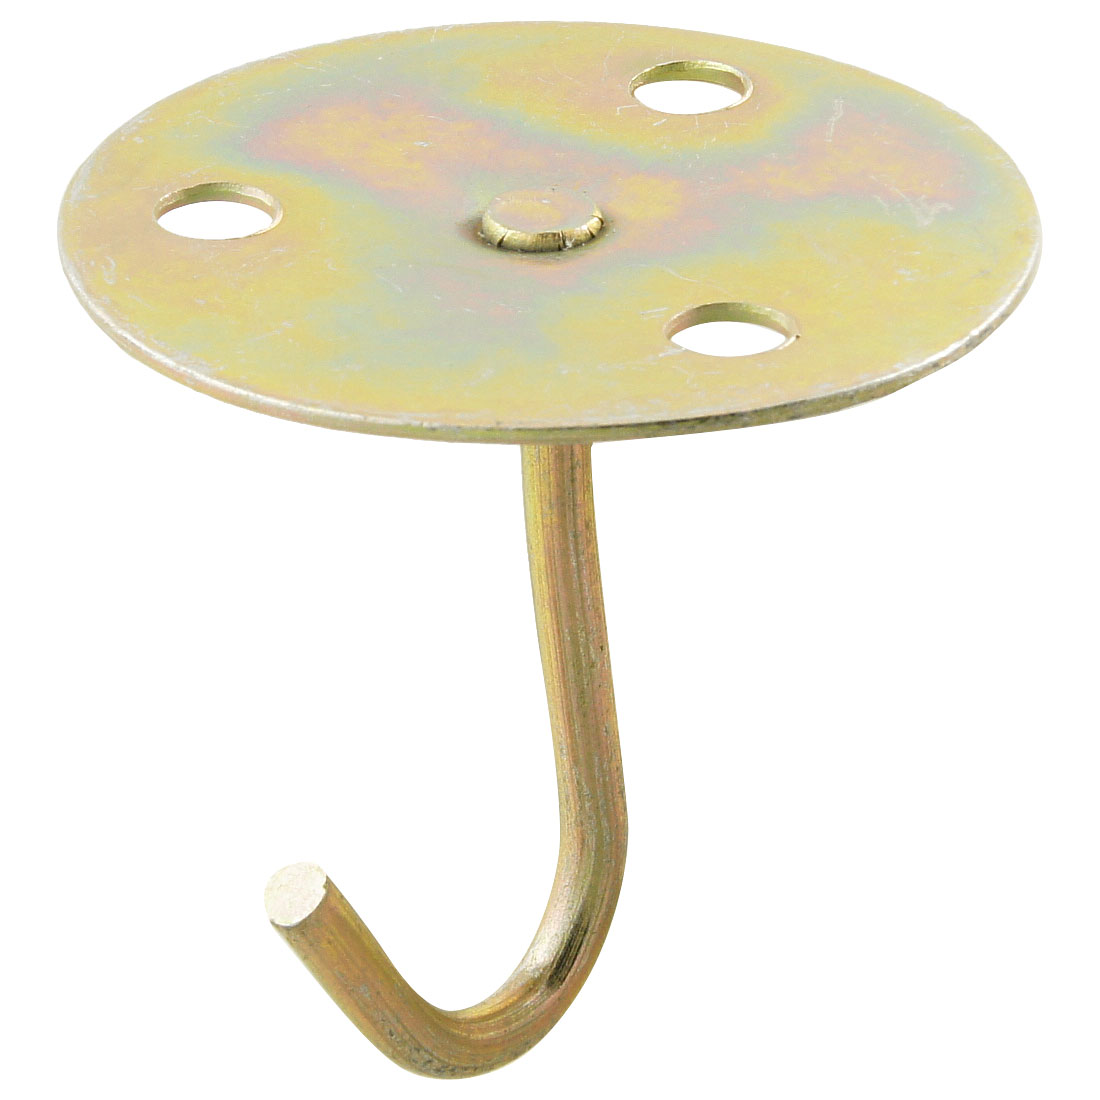 "3.5"" Diameter Opened Hanger Ceiling Hook for Fan Light Fixture"